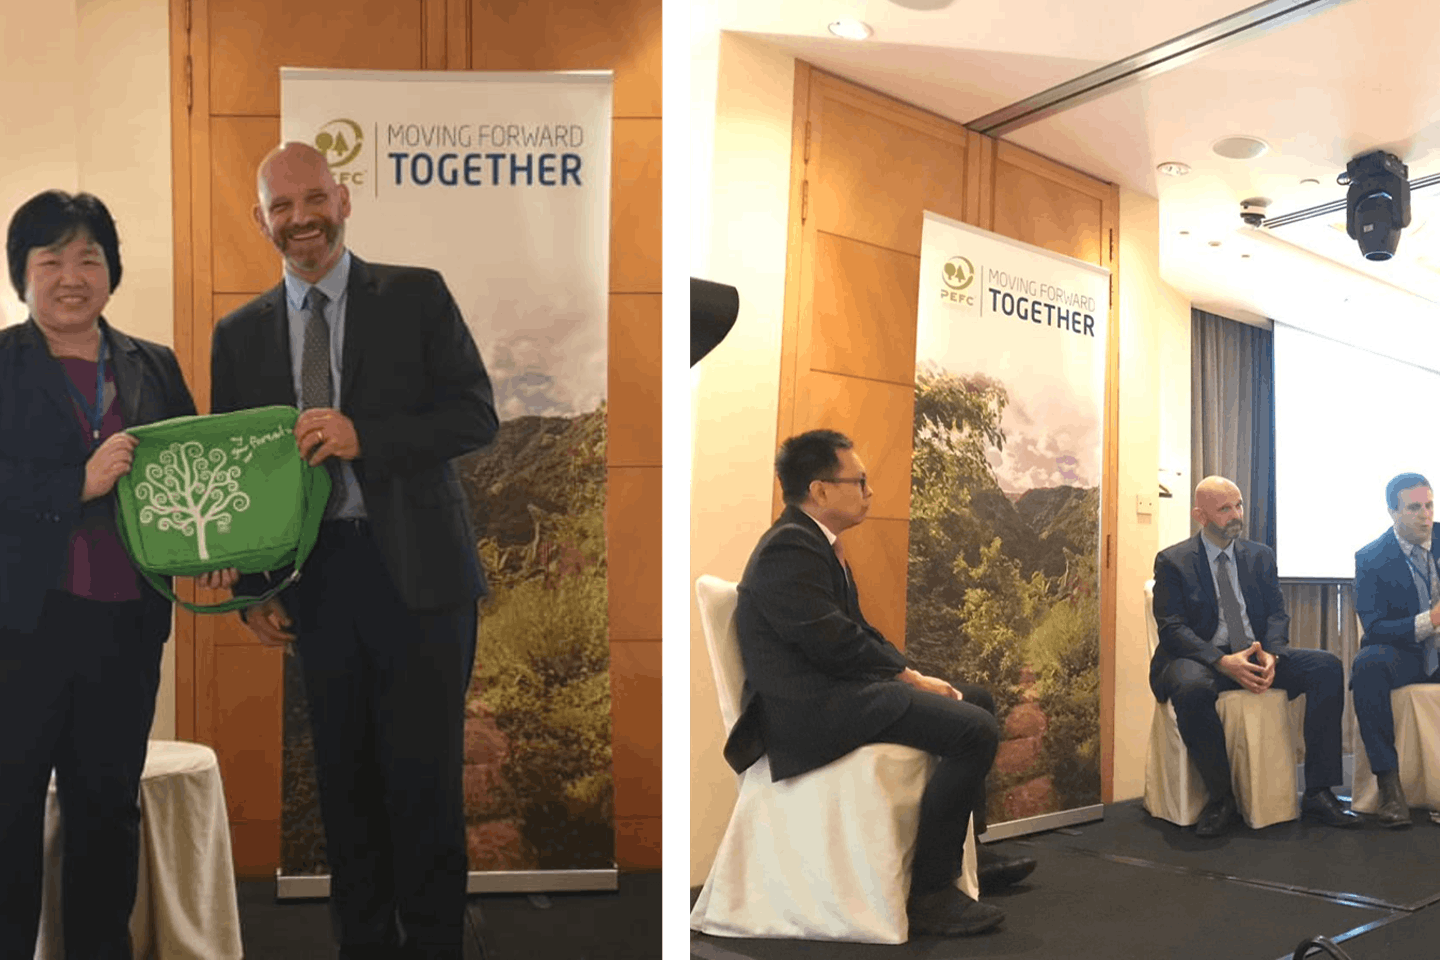 Singapore set to expand chain of custody certification and responsible sourcing of forest products